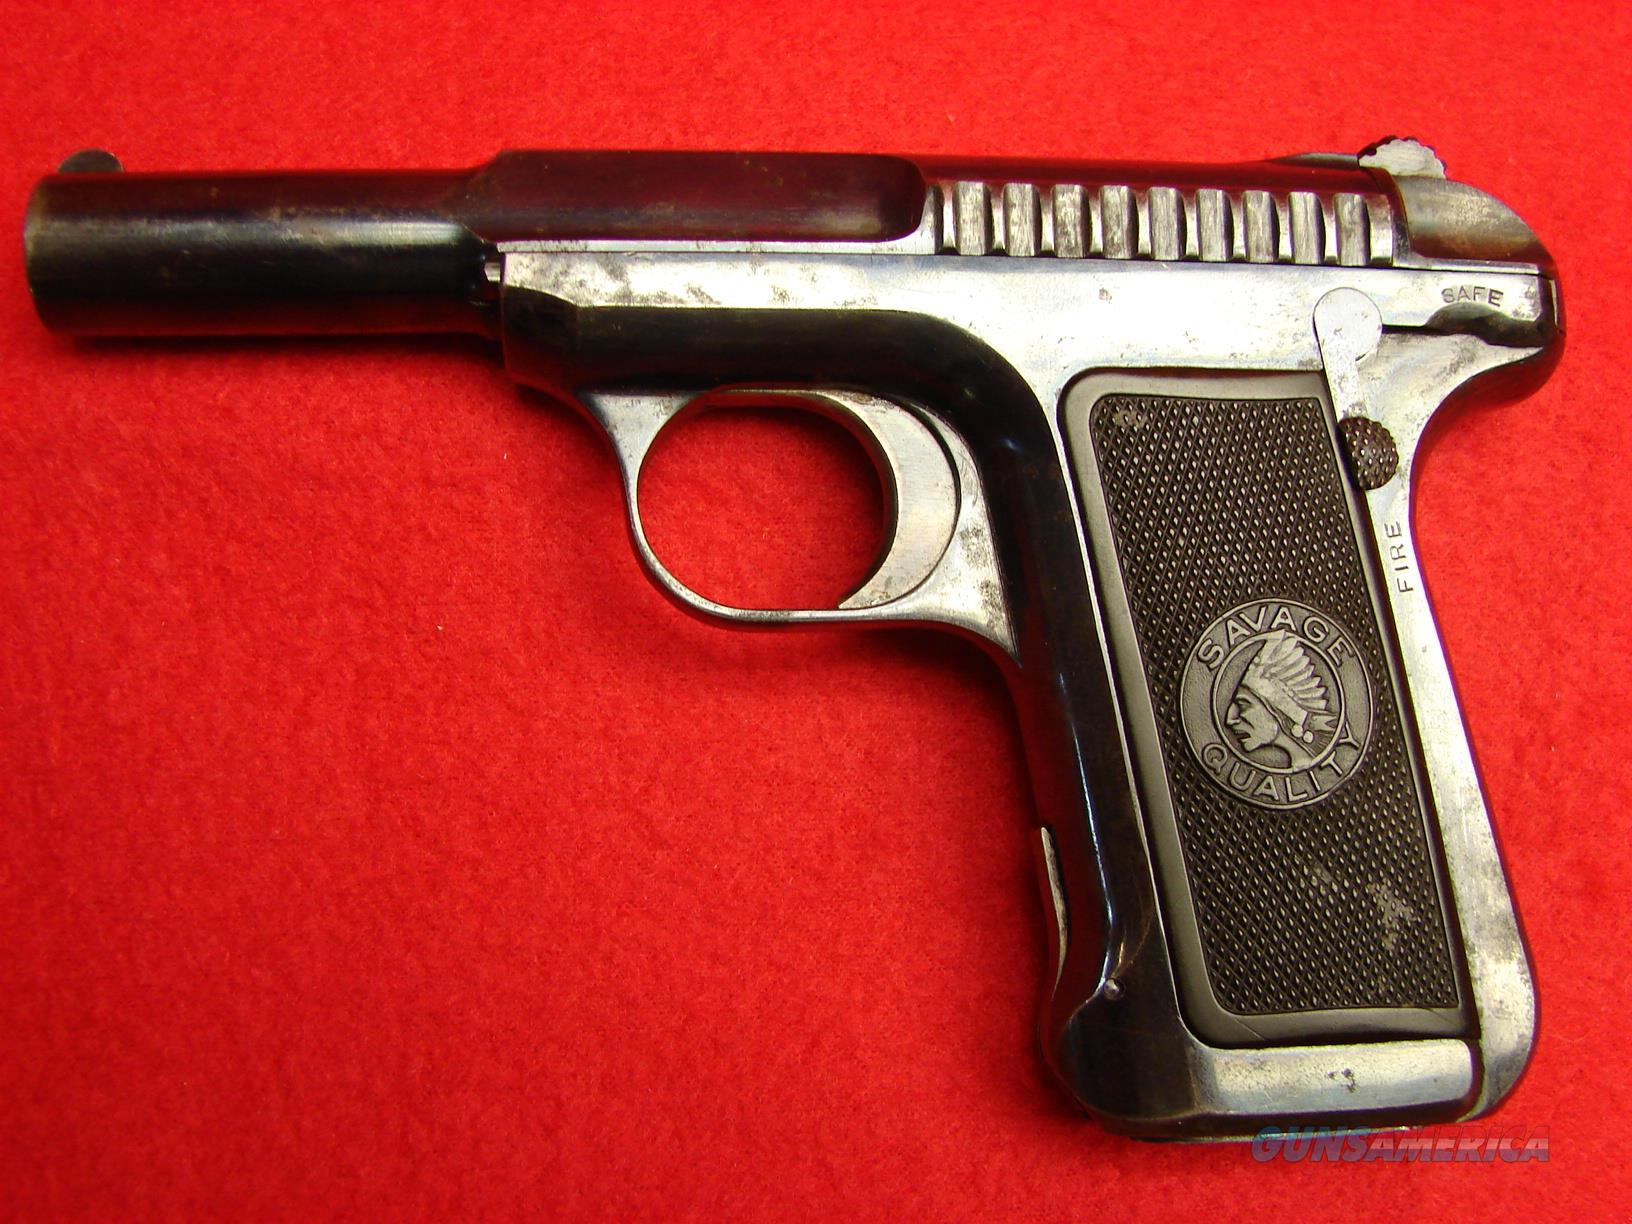 Savage Model 1905 Semi-Automatic Pistol - 32acp - Great Shooter!  Guns > Pistols > Savage Pistols